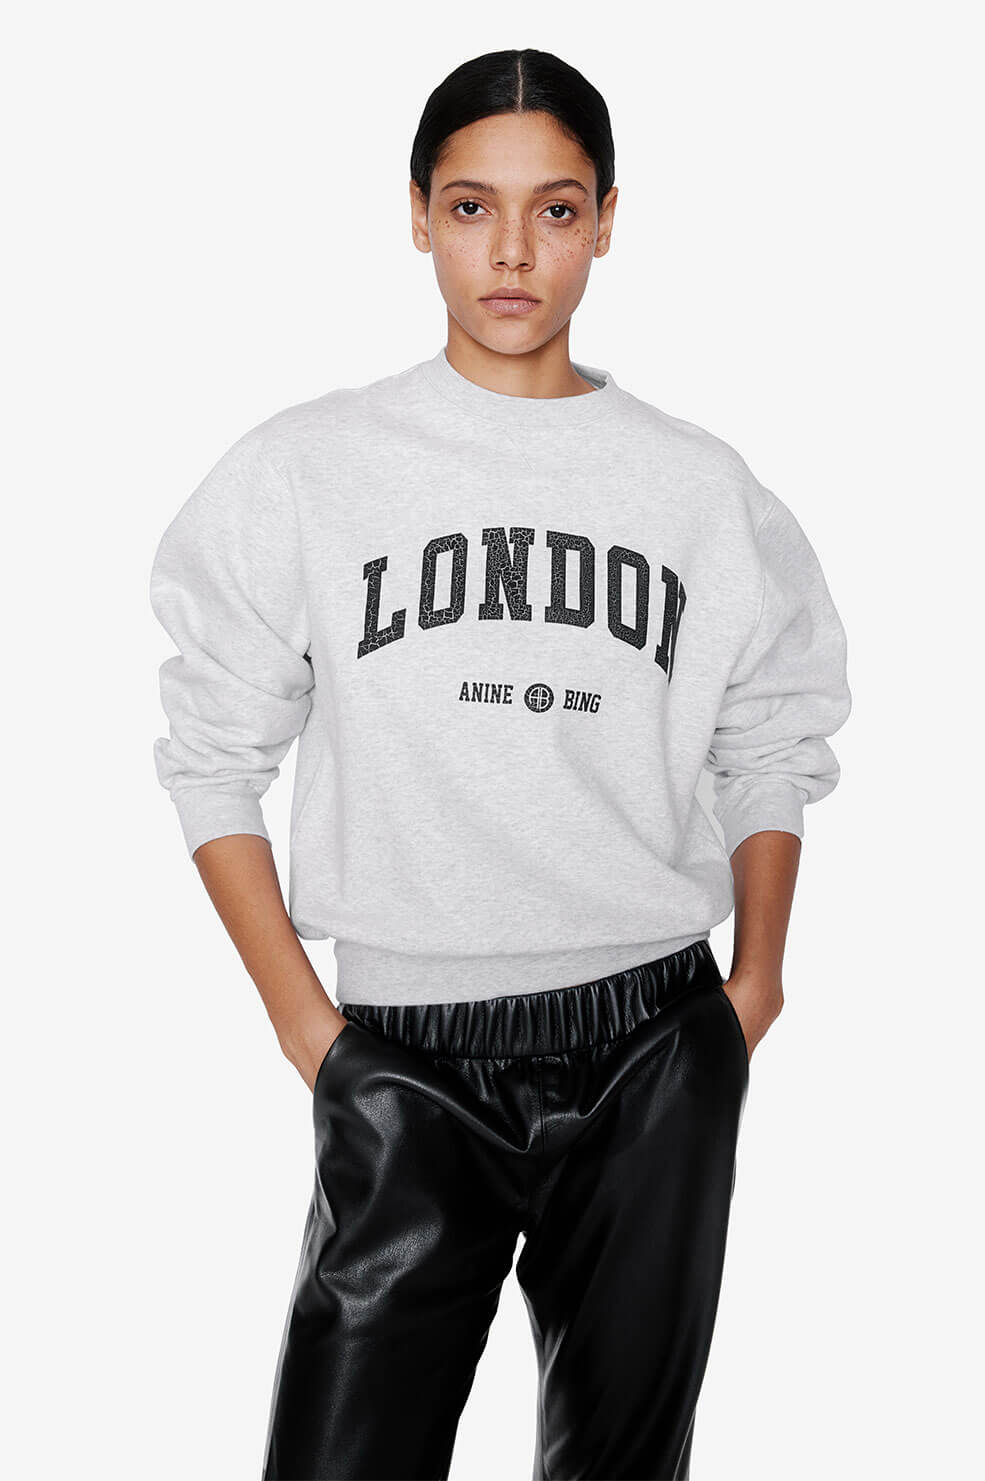 Ramona Sweatshirt University London  product image